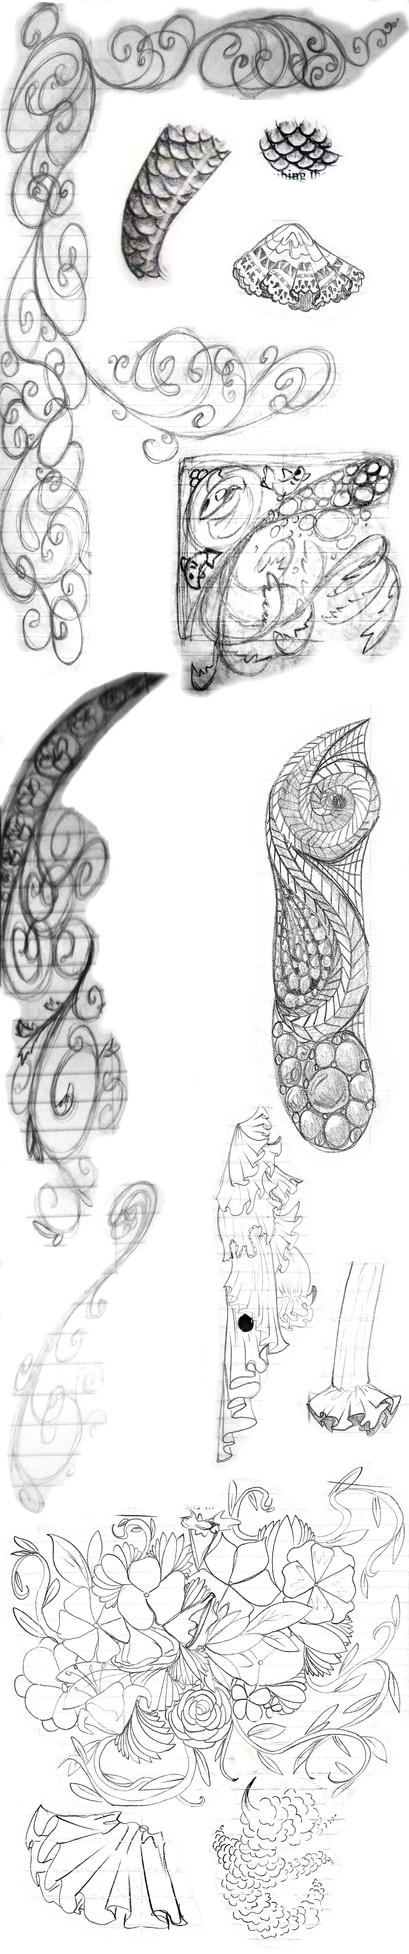 Pattern and design sketchdump 2015 by LadyKaltag